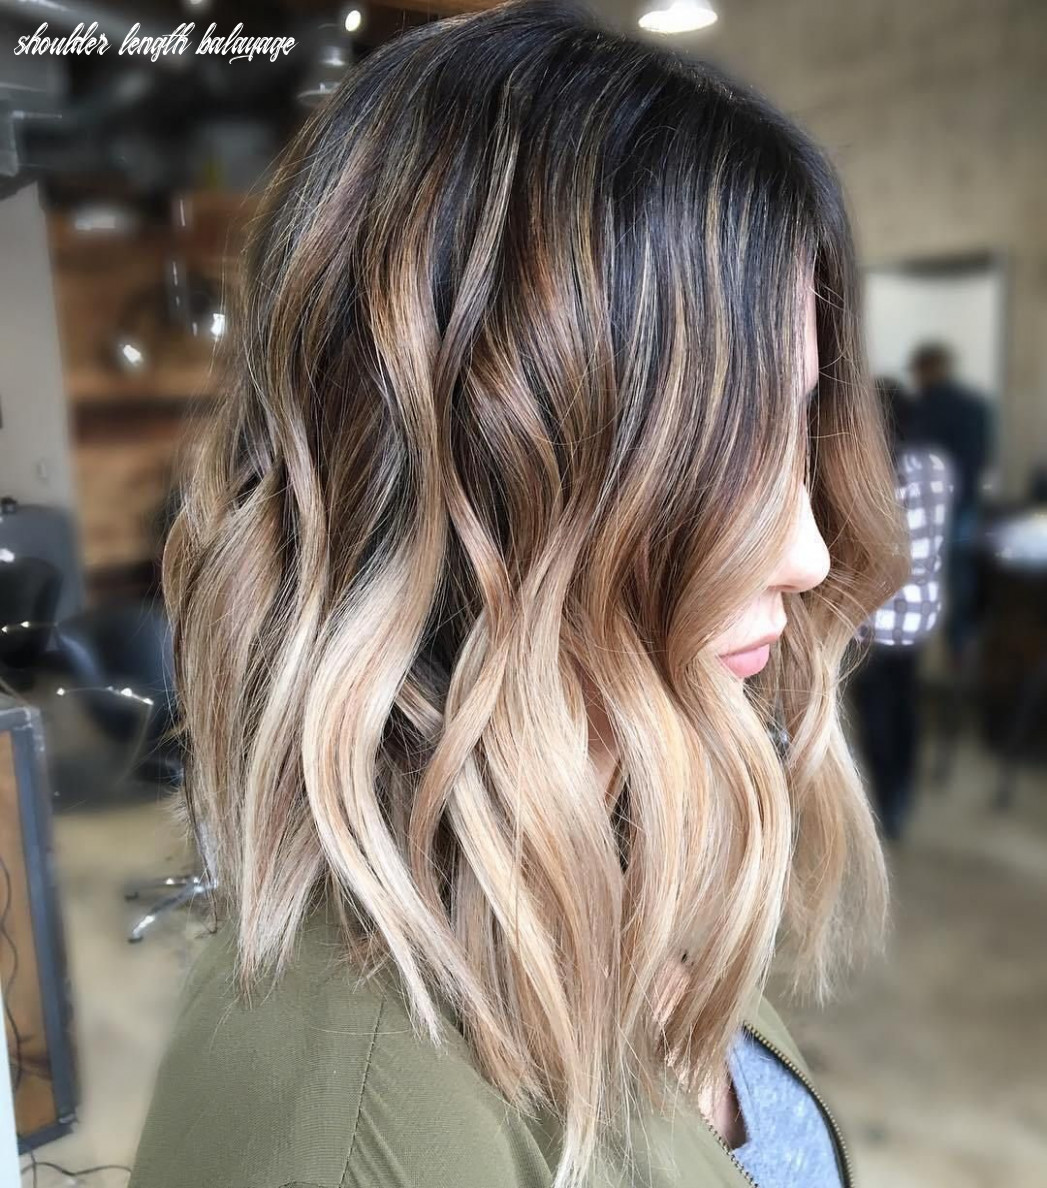 Balayage ombre hair styles for shoulder length hair | hair color